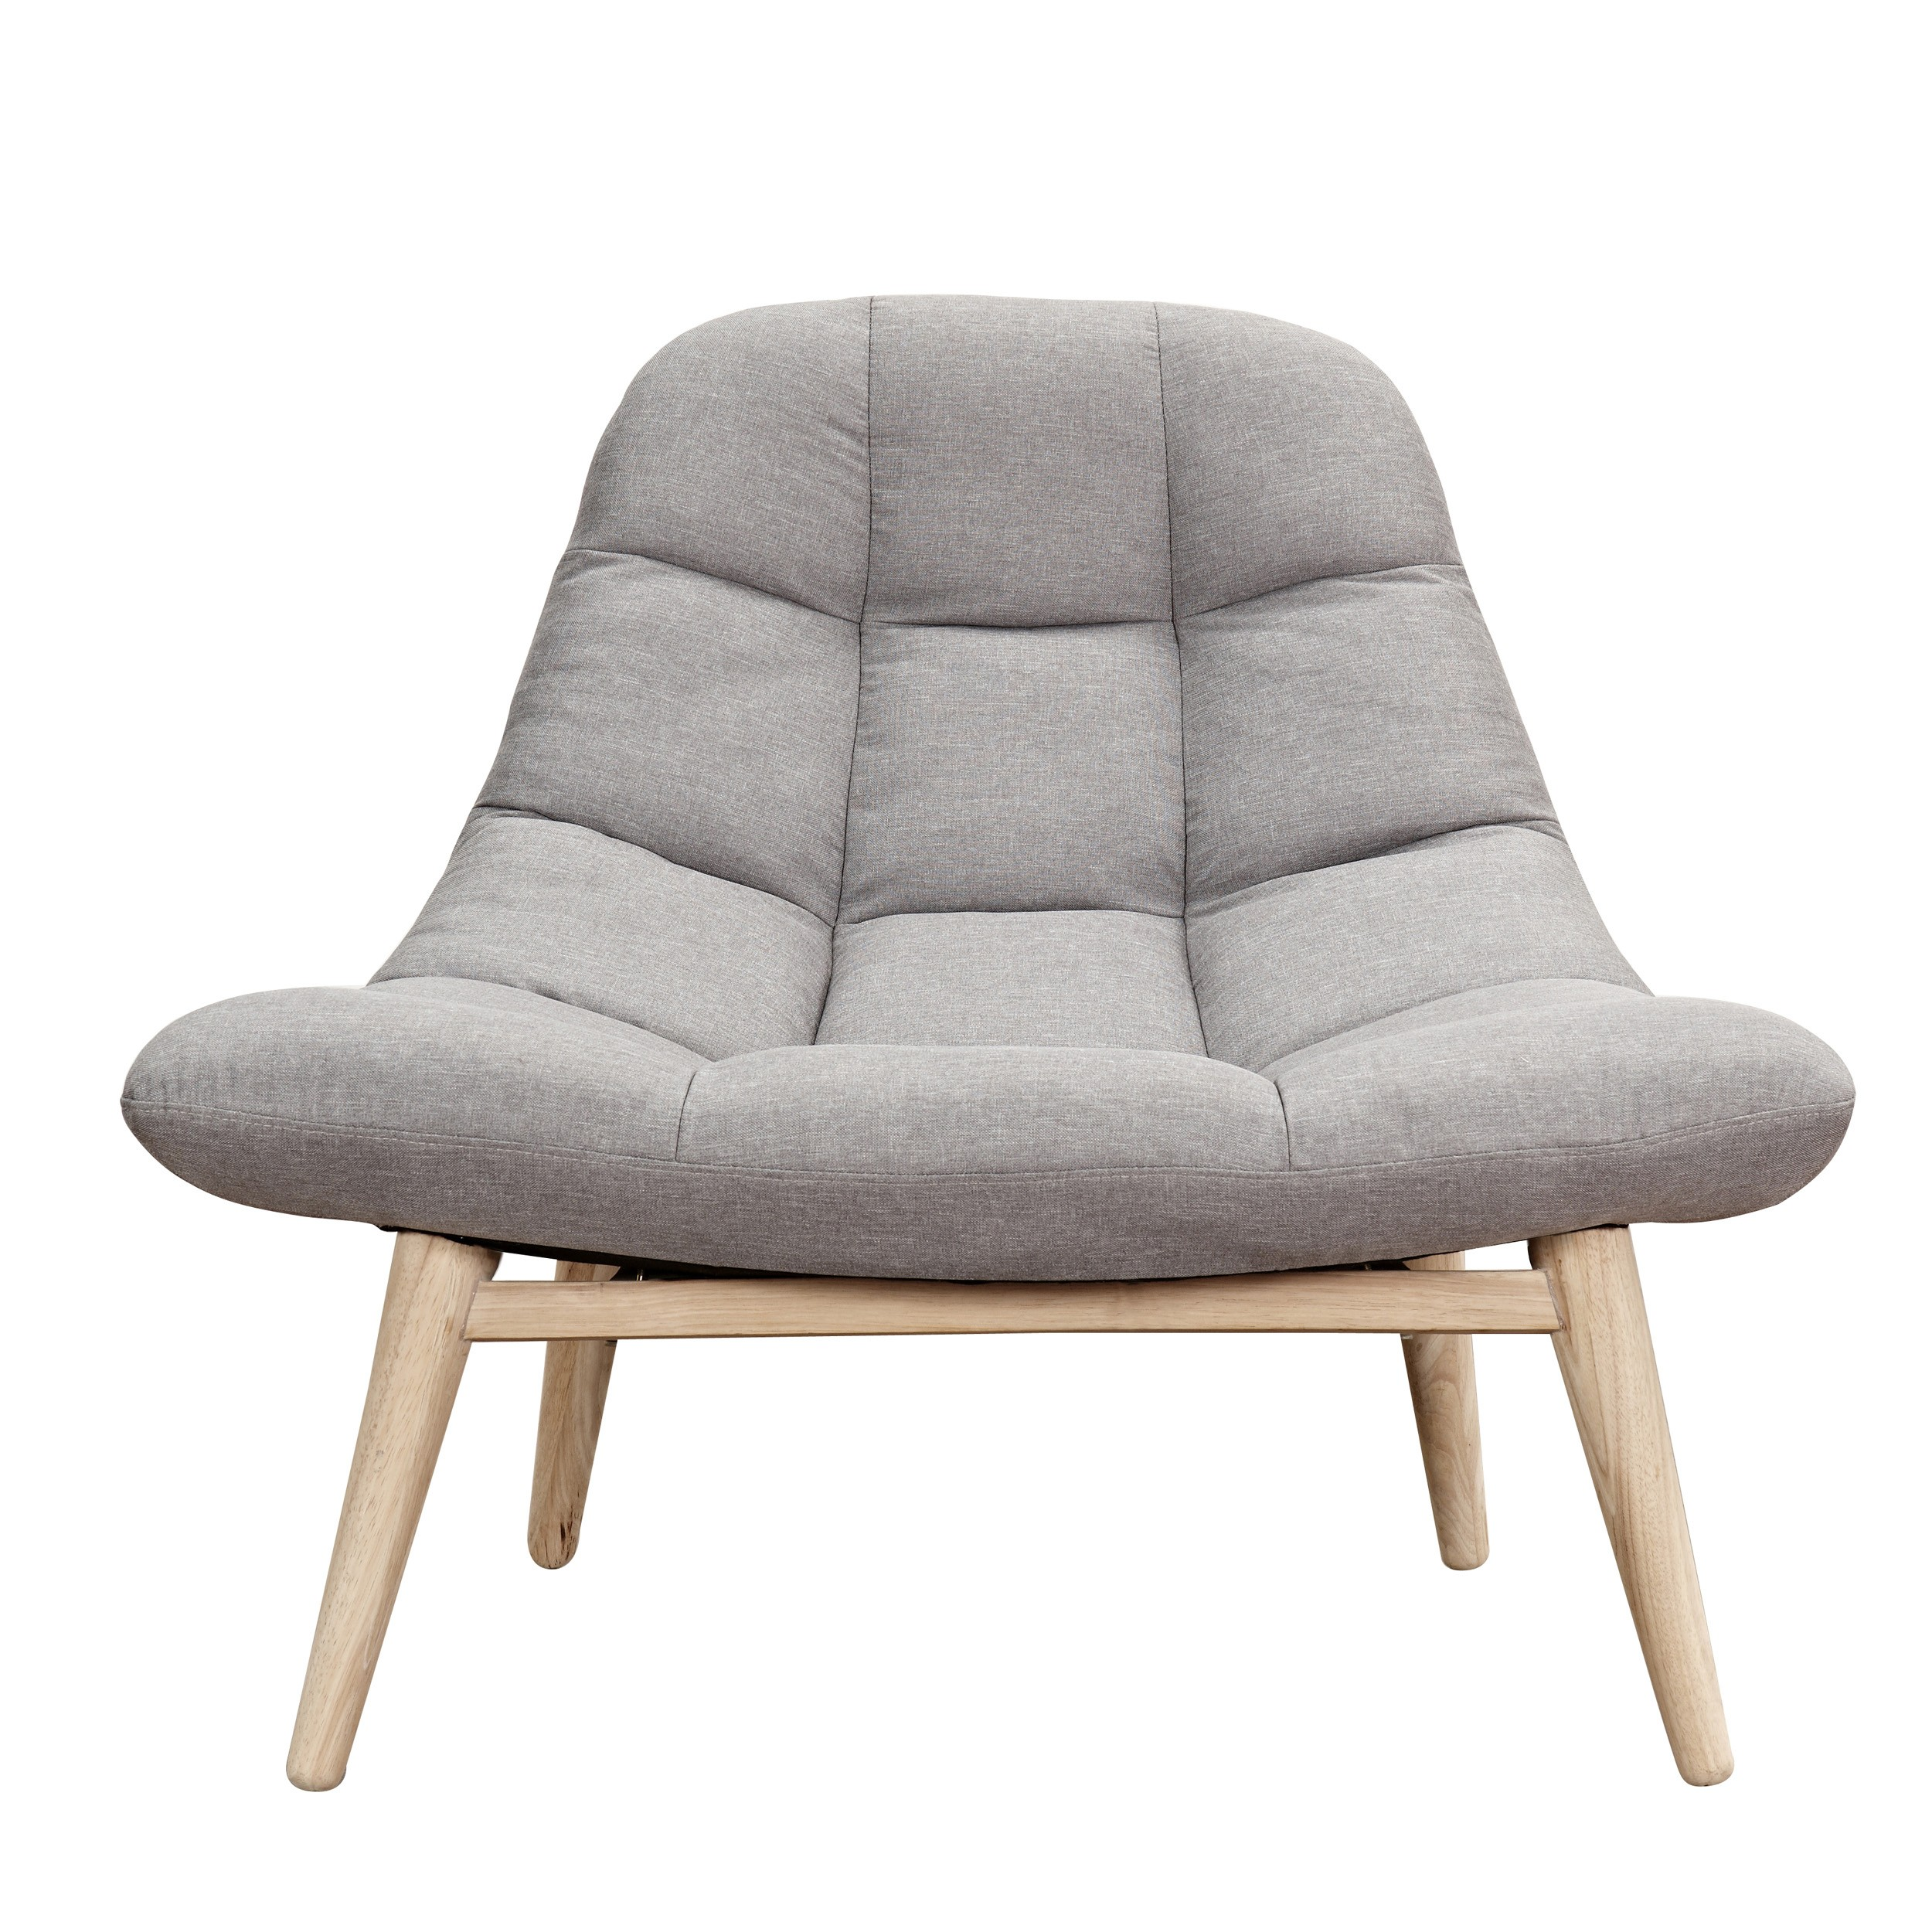 fauteuil melby gris perle adopez nos fauteuils melby gris perle rdv d co. Black Bedroom Furniture Sets. Home Design Ideas